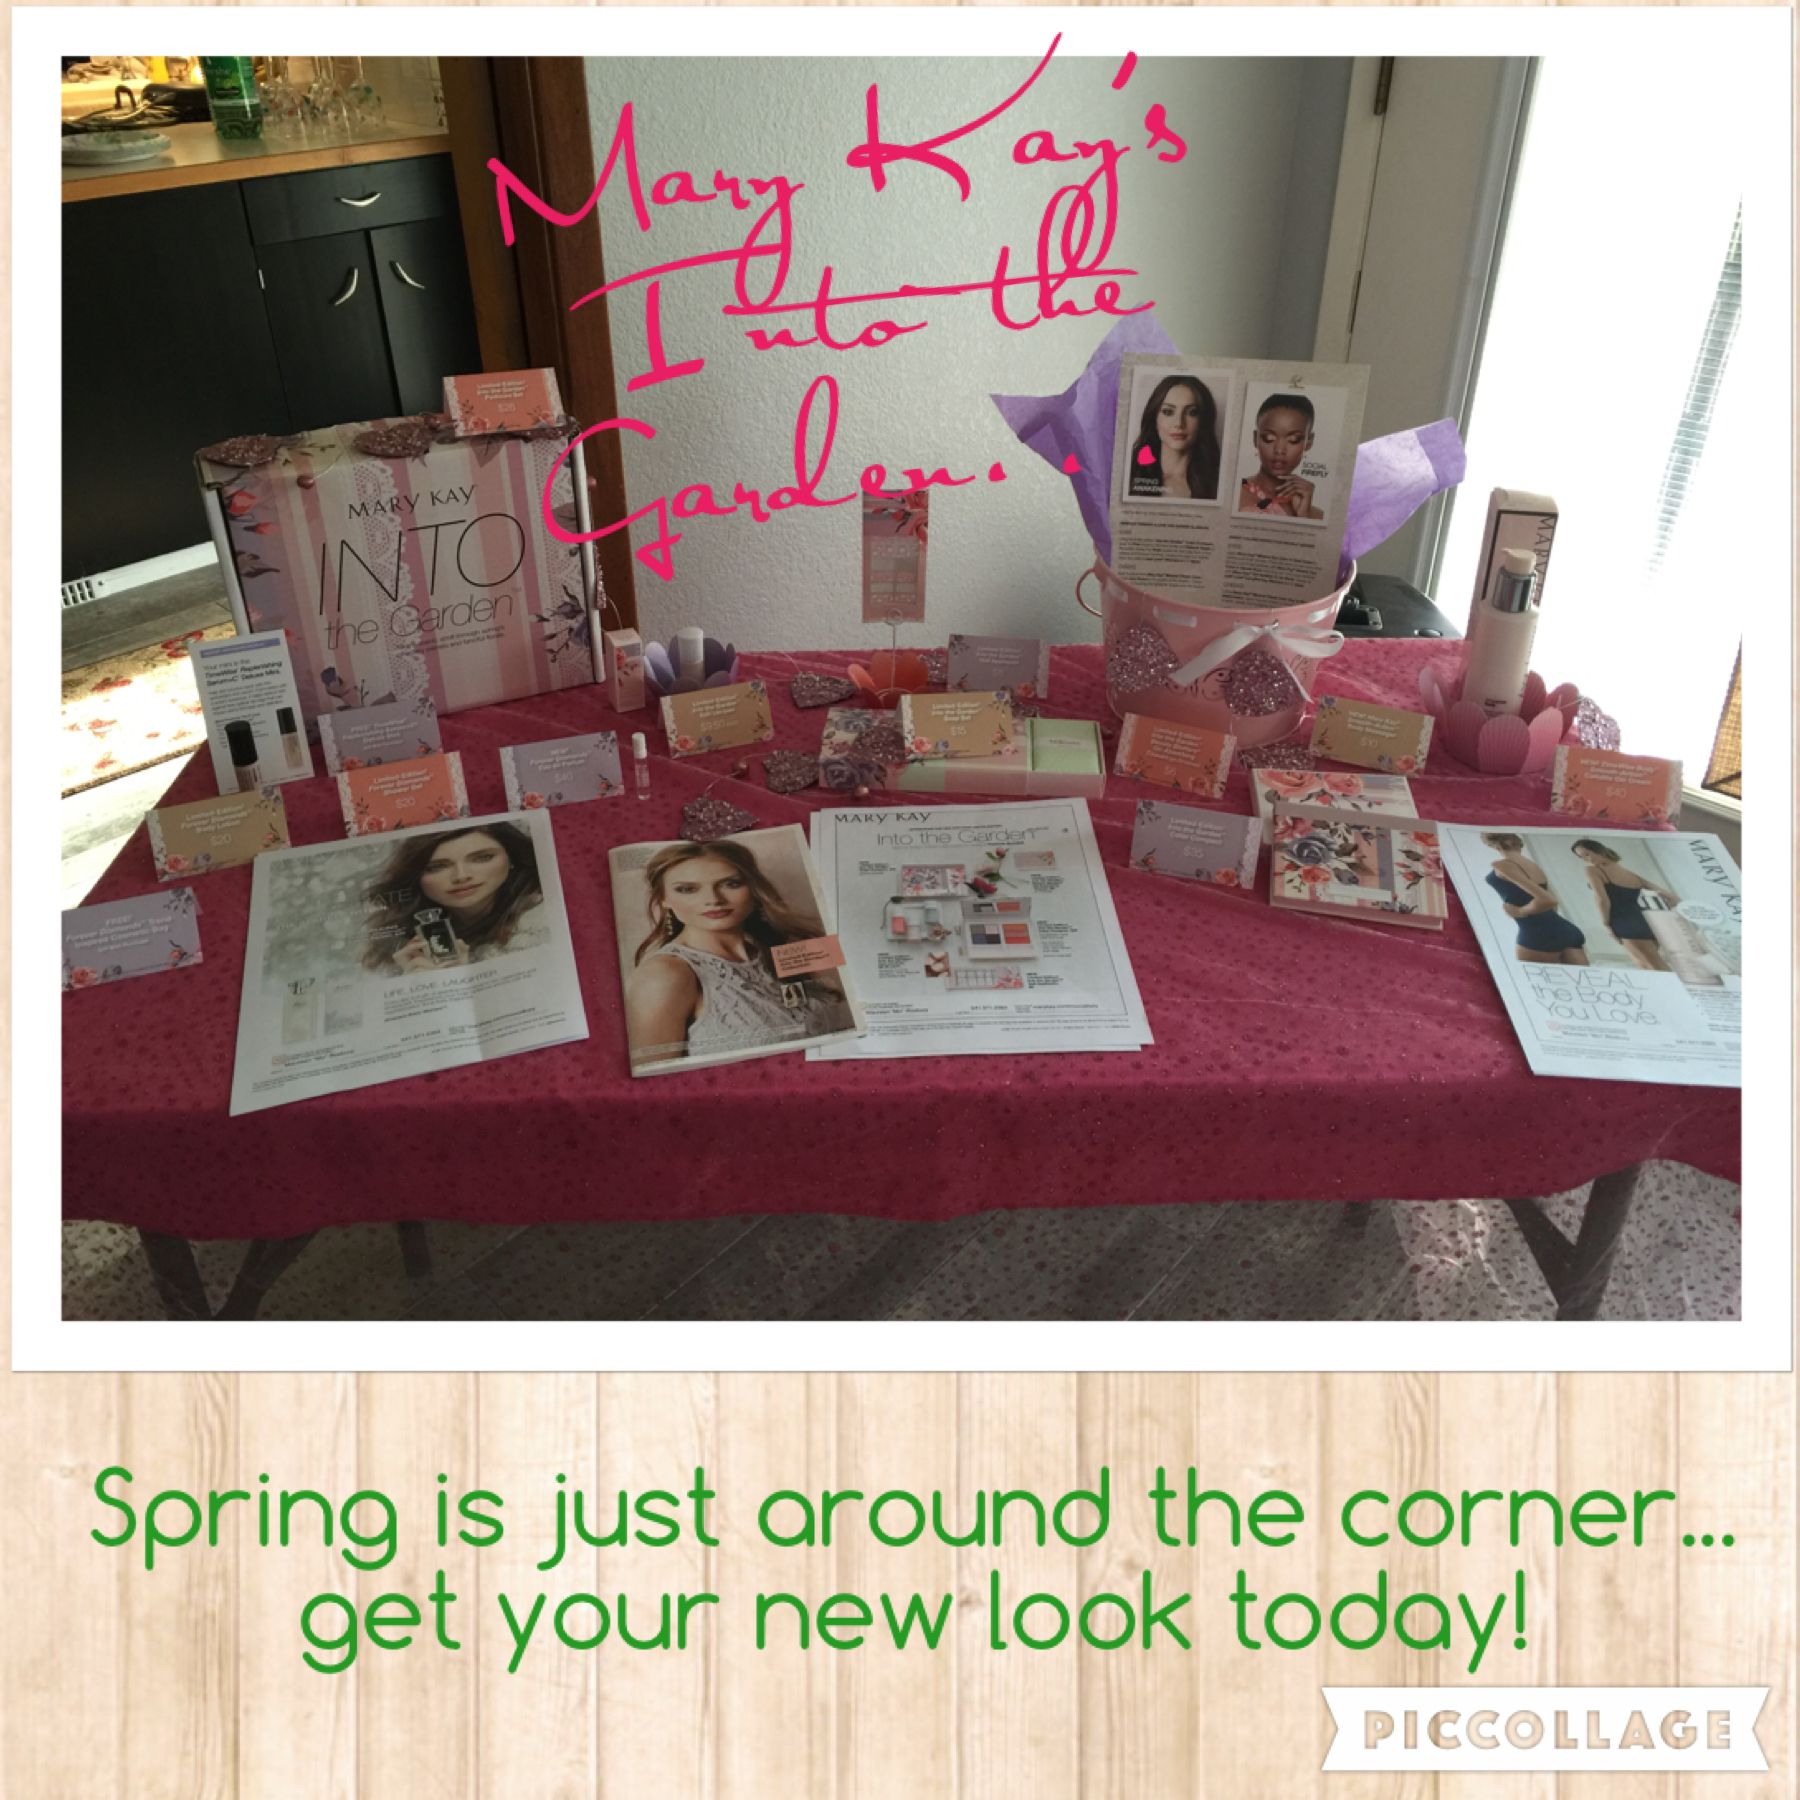 Mary kay online agreement on intouch - Explore Party Ideas Mary Kay And More